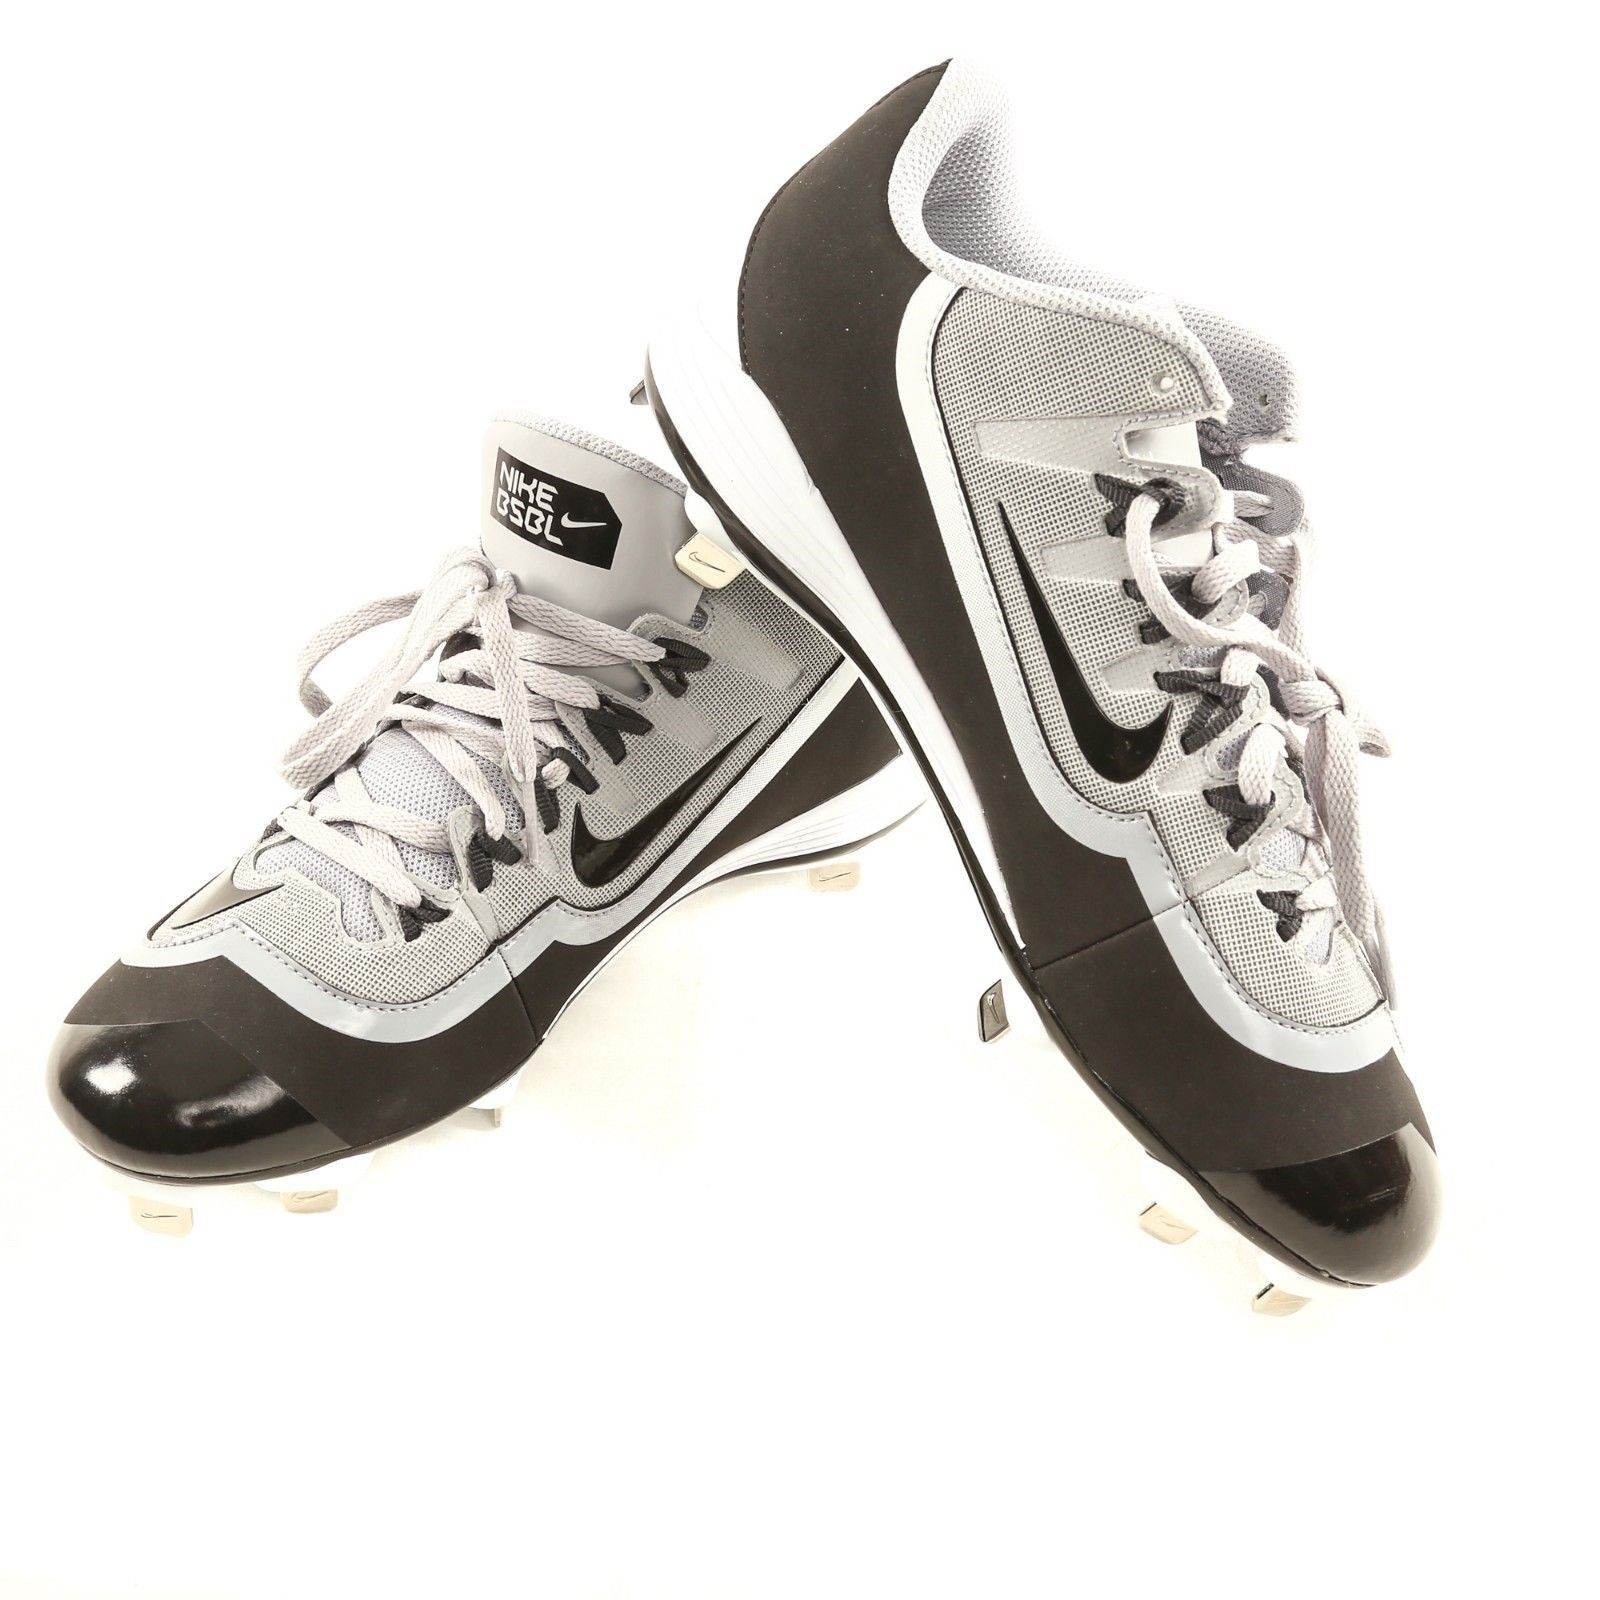 sale retailer 3c7d1 30de2 Nike Air Baseball Cleats Huarache 2K Filth and 50 similar items. 57